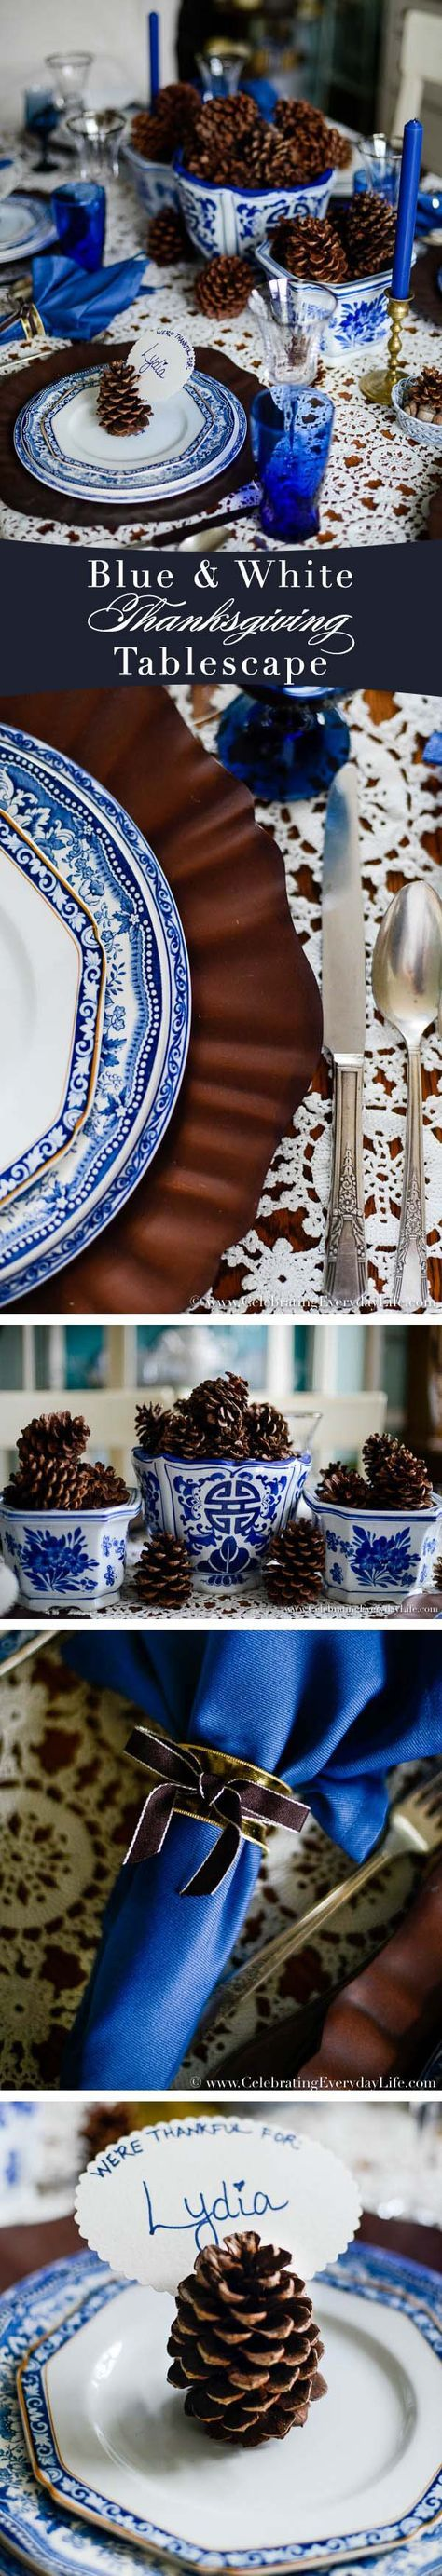 A Blue & White Fall Tablescape | Celebrating everyday life with Jennifer Carroll